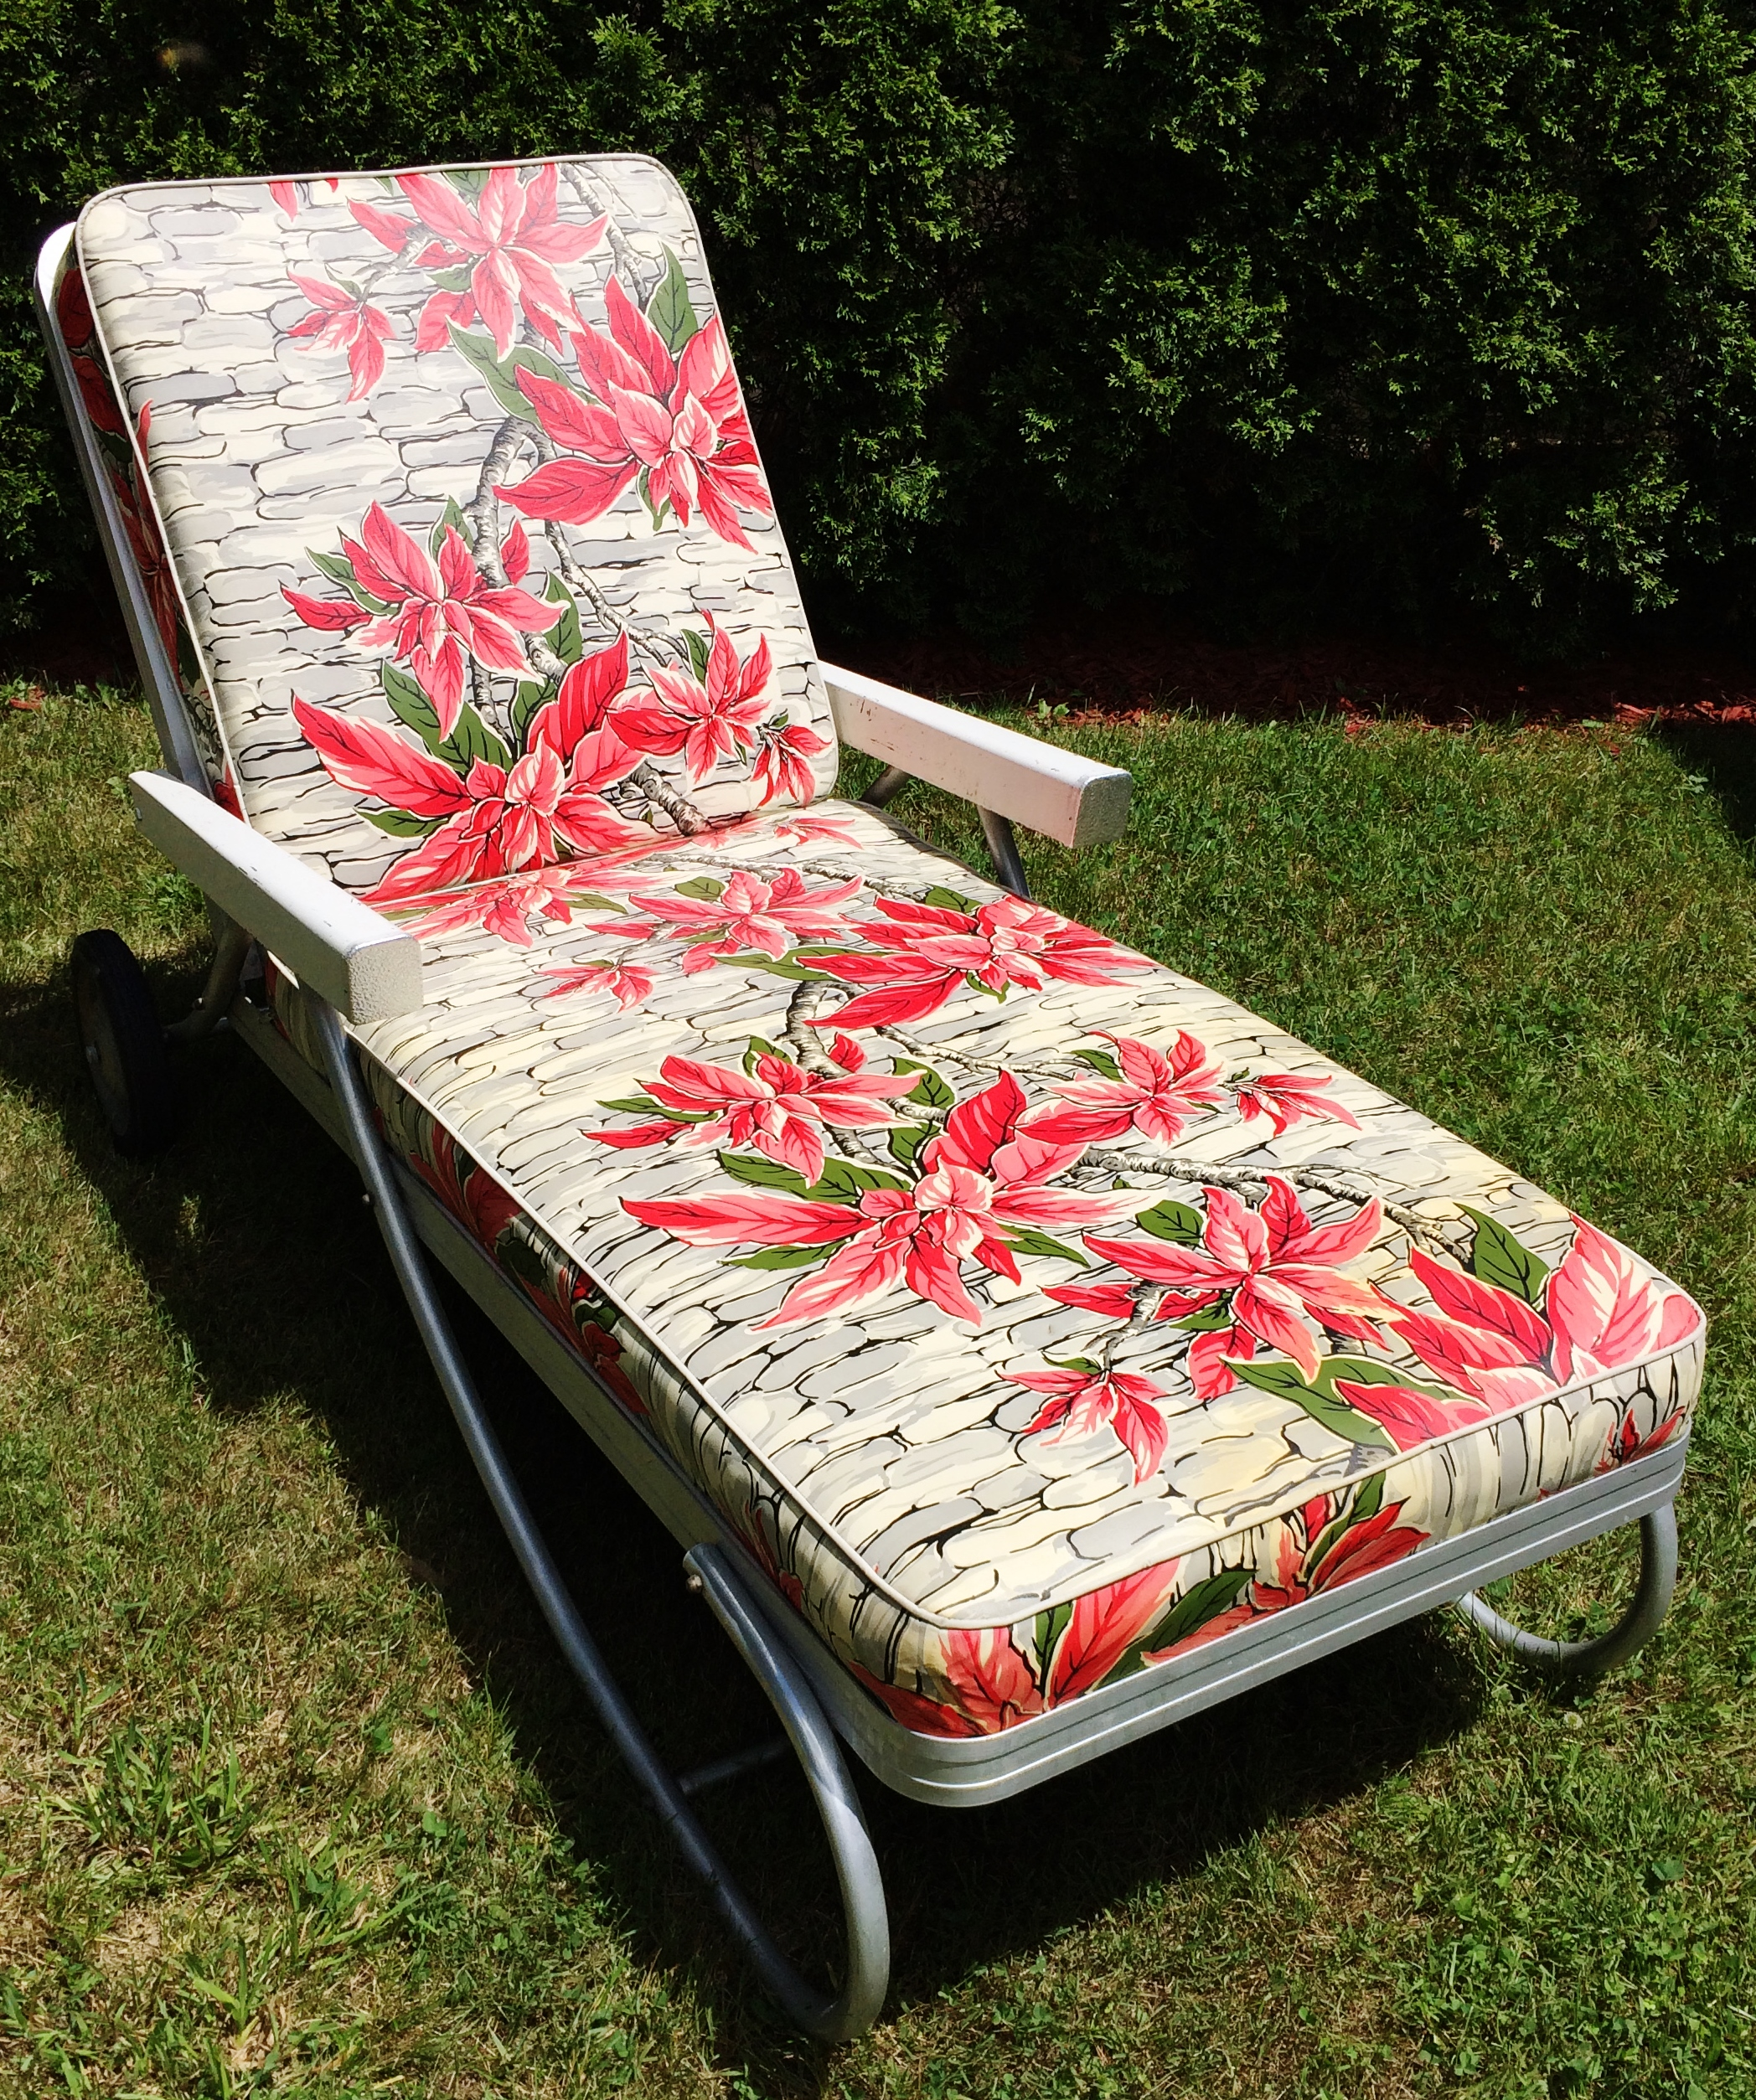 Offered Is A Beautiful Vintage Bunting Aluminum Chaise Lounge Patio Chair  With Red Floral Vinyl Cushions